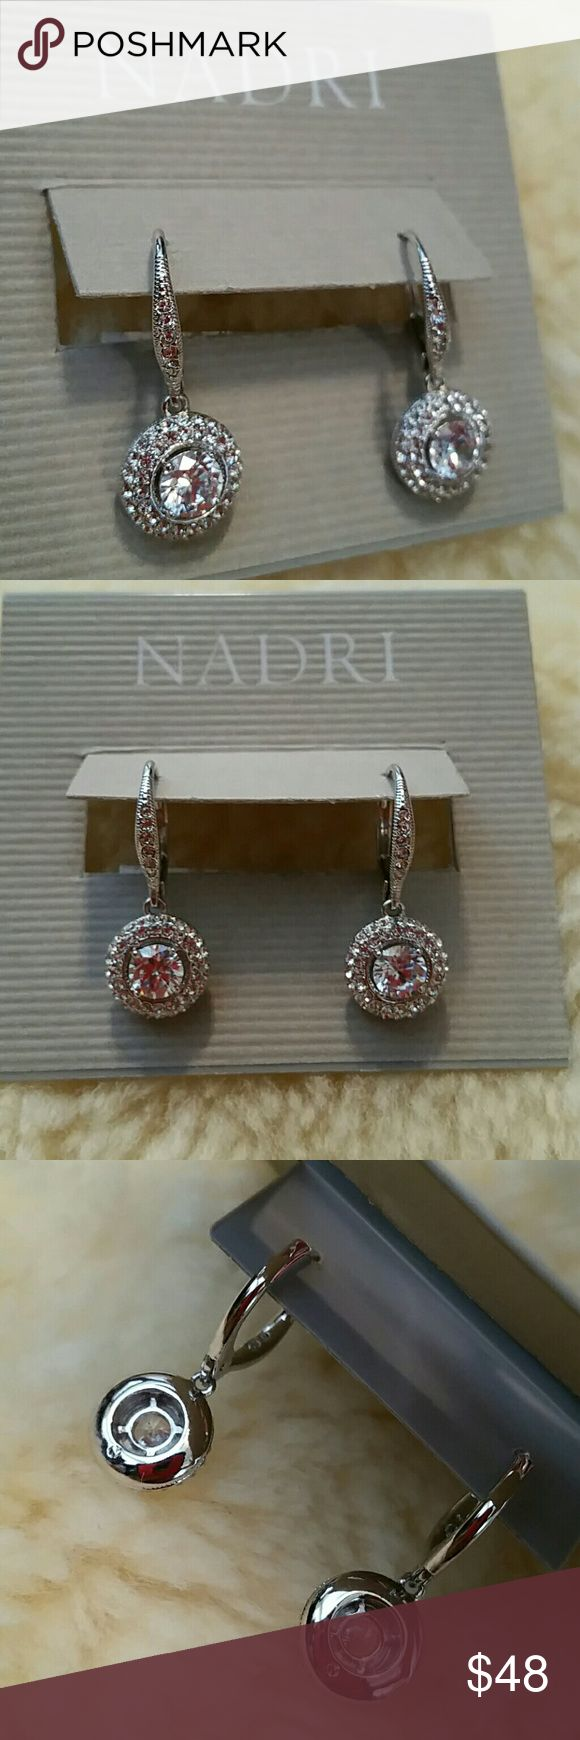 "Nadri Rhodium CZ crystal drop leverback earrings Nordstrom Nadri Rhodium CZ crystal drop leverback earrings 6mm prong set CZ framed with pave crystal encrusted circle dangles Crystal encrusted Euro-wire leverbacks Approx 1"" overall drop, 1/2"" diameter dangle Brand new and unused with earring card Will ship in a decorative organza giftbag Nadri Jewelry Earrings"